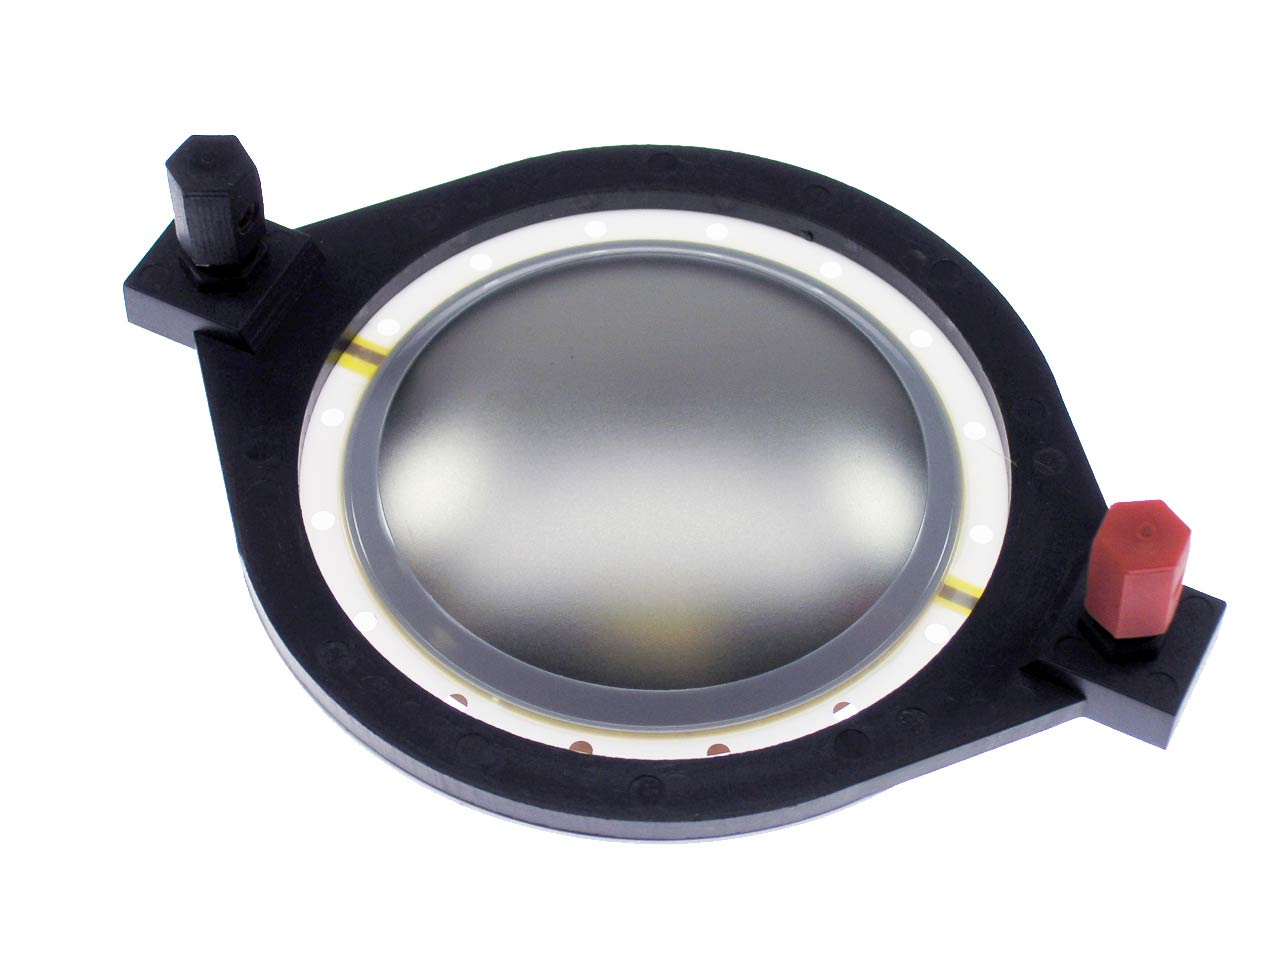 SS Audio Diaphragm For RCF N850, EAW 15410082, Renkus Heinz, Others, 8 Ohm